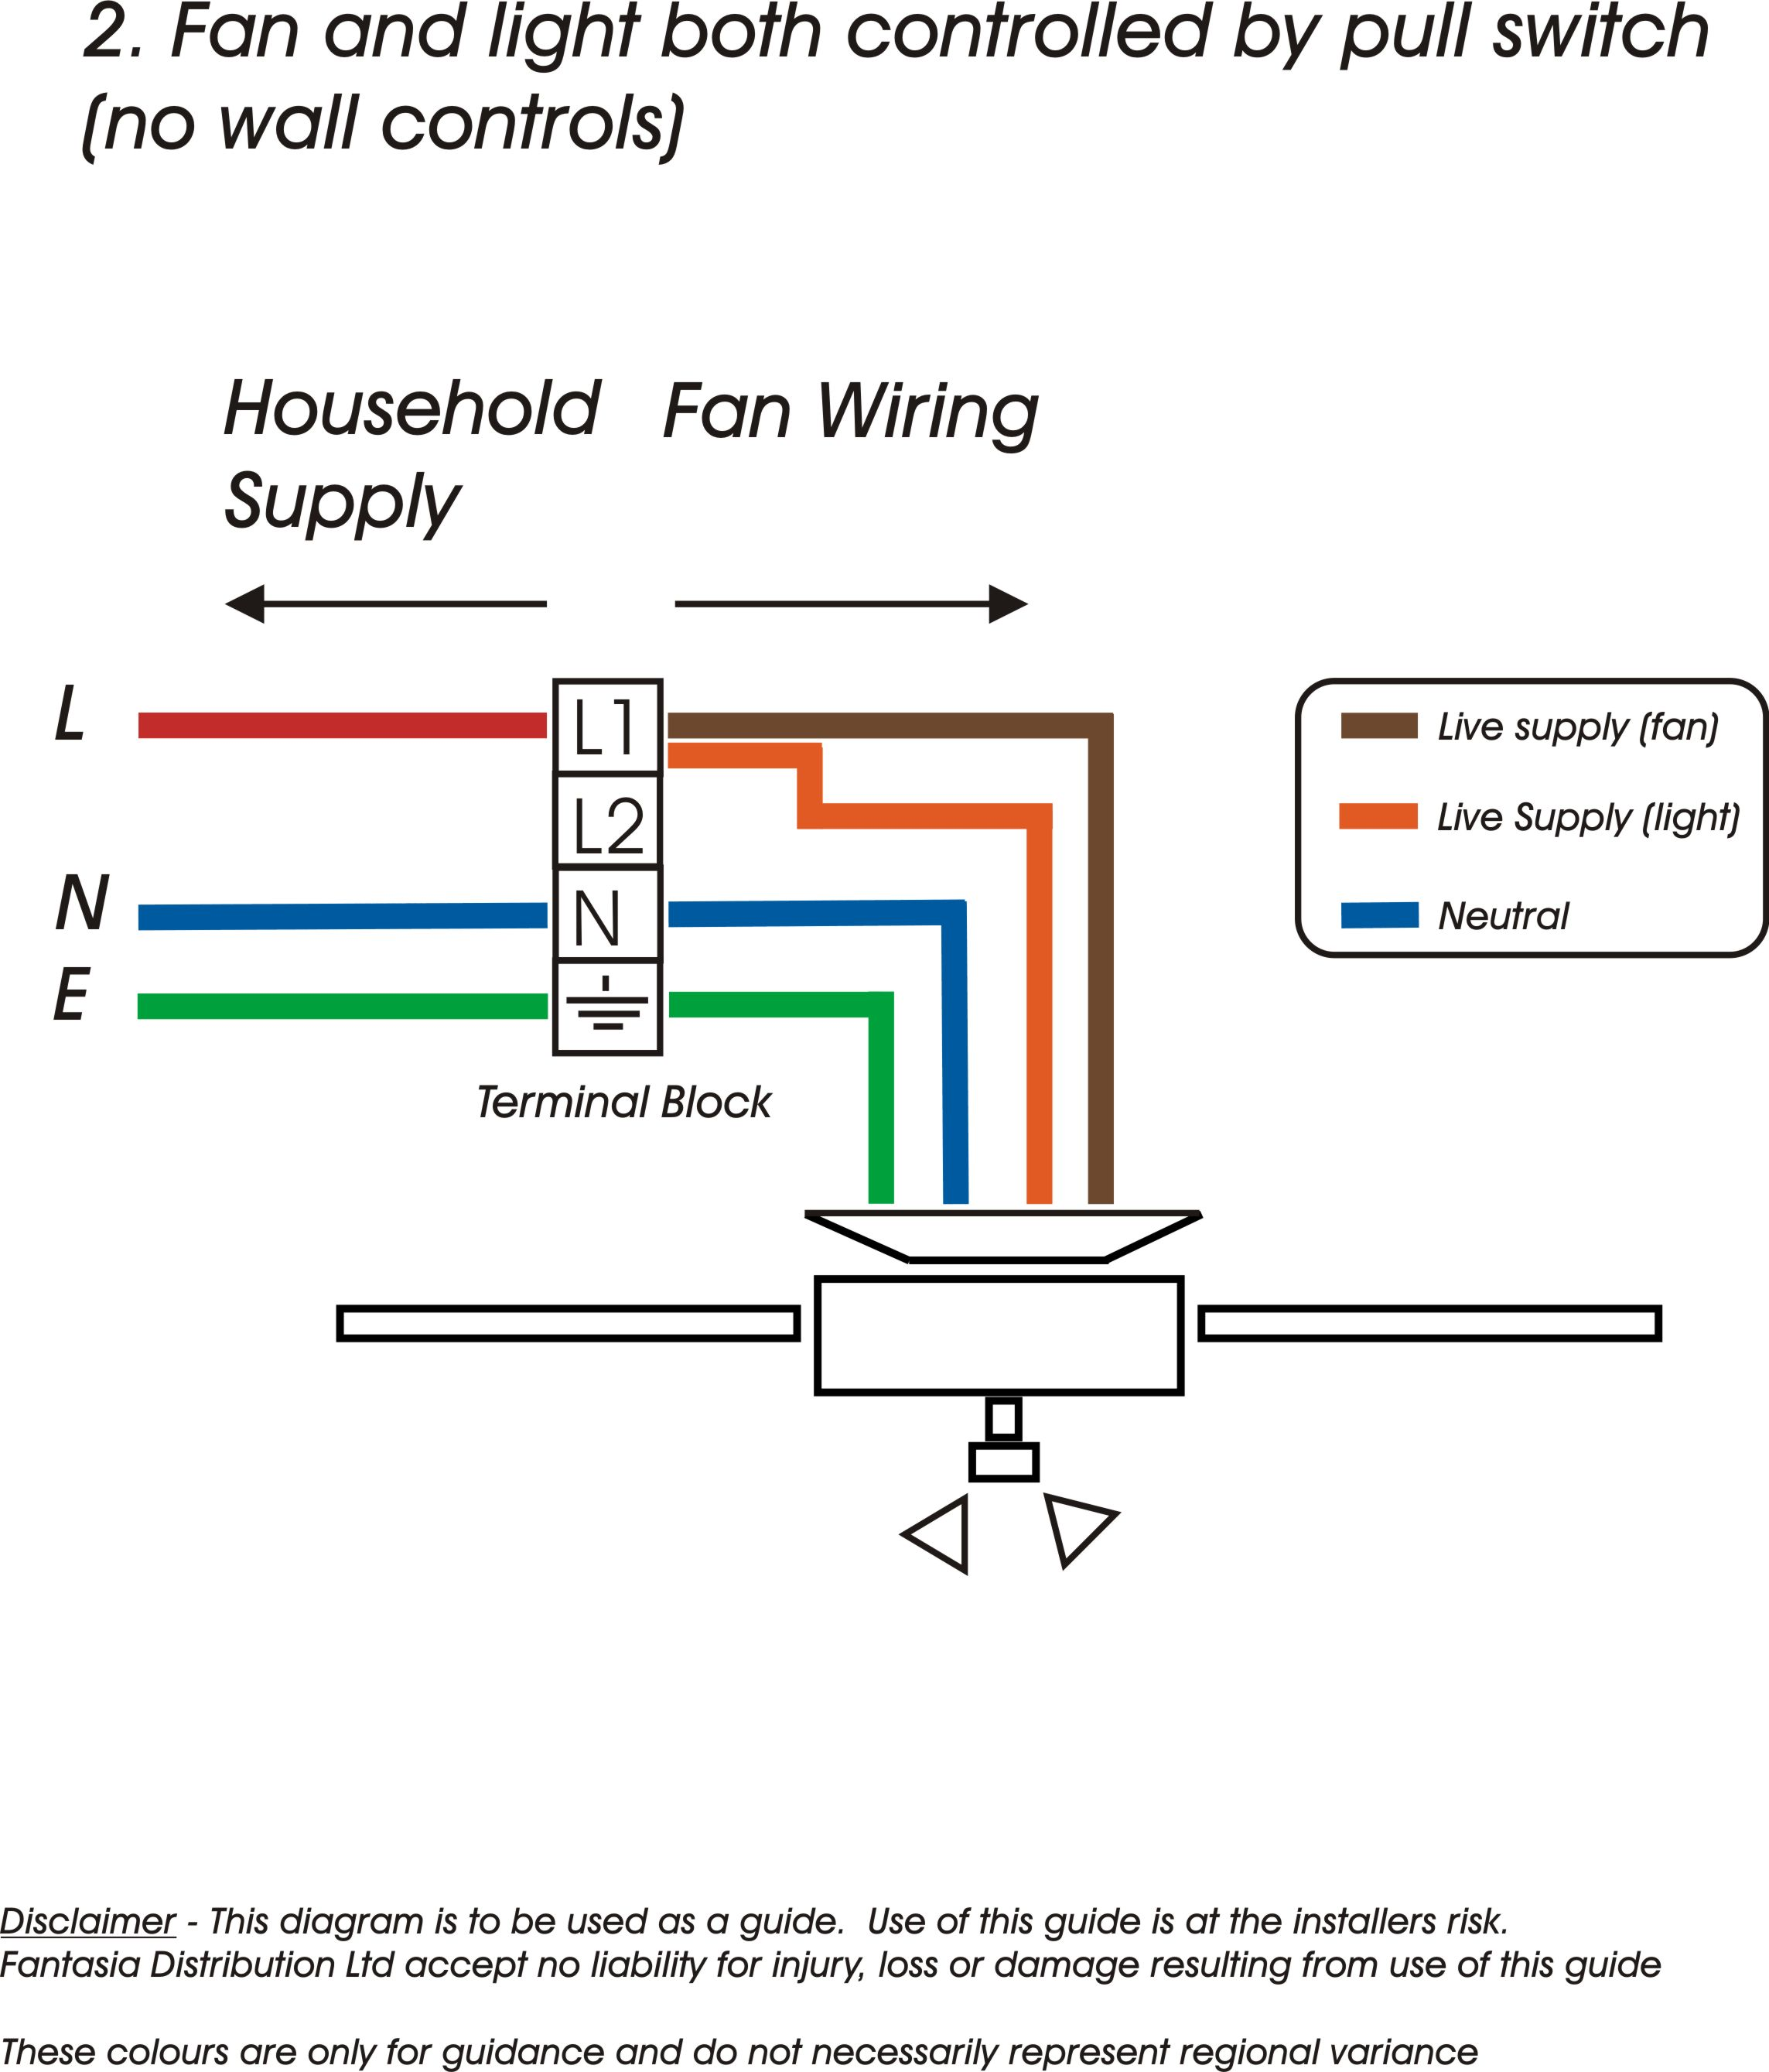 wiring ceiling fans 2?resize=800%2C937 hampton bay ceiling fan motor wiring diagram integralbook com hampton bay ceiling fan wiring diagram red wire at fashall.co